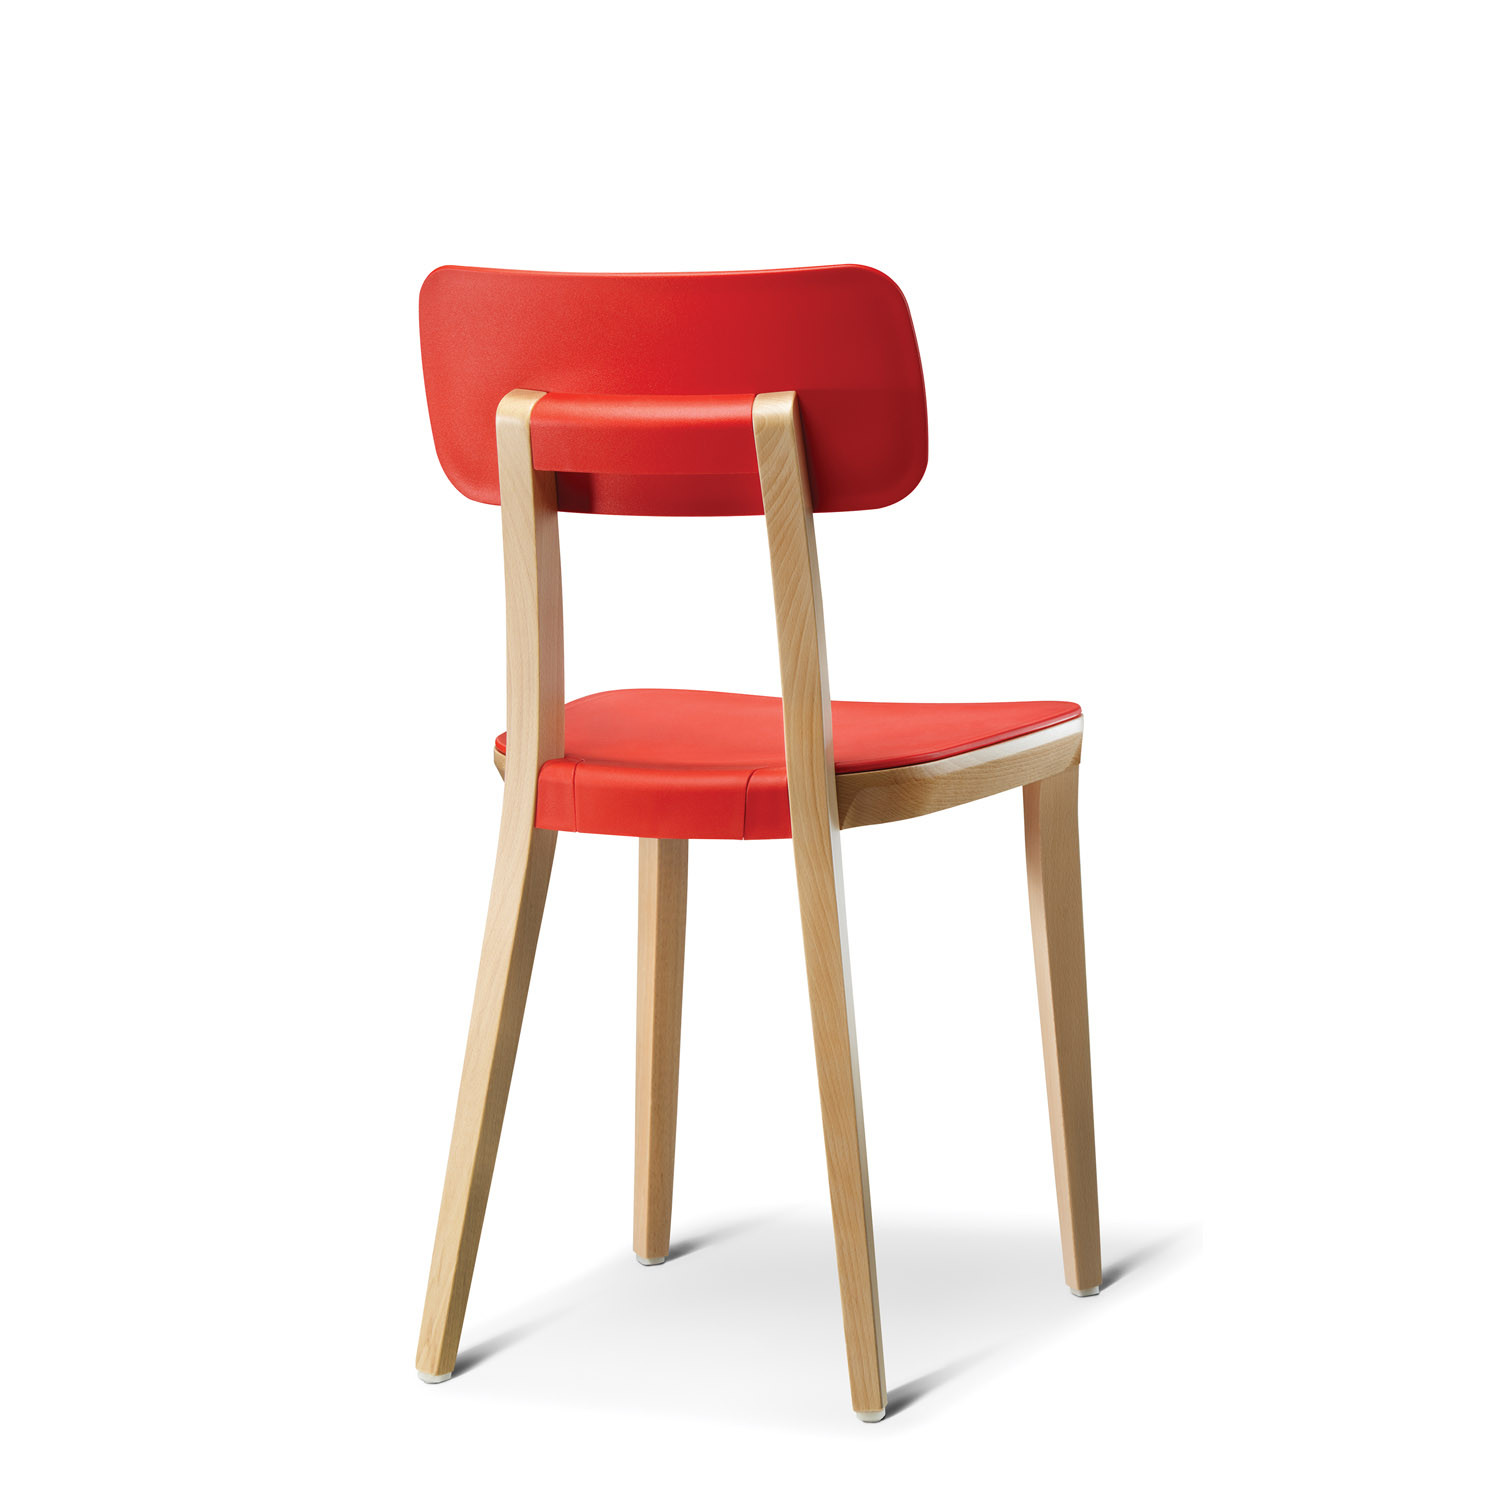 Retro Solid Wooden Chair Rear